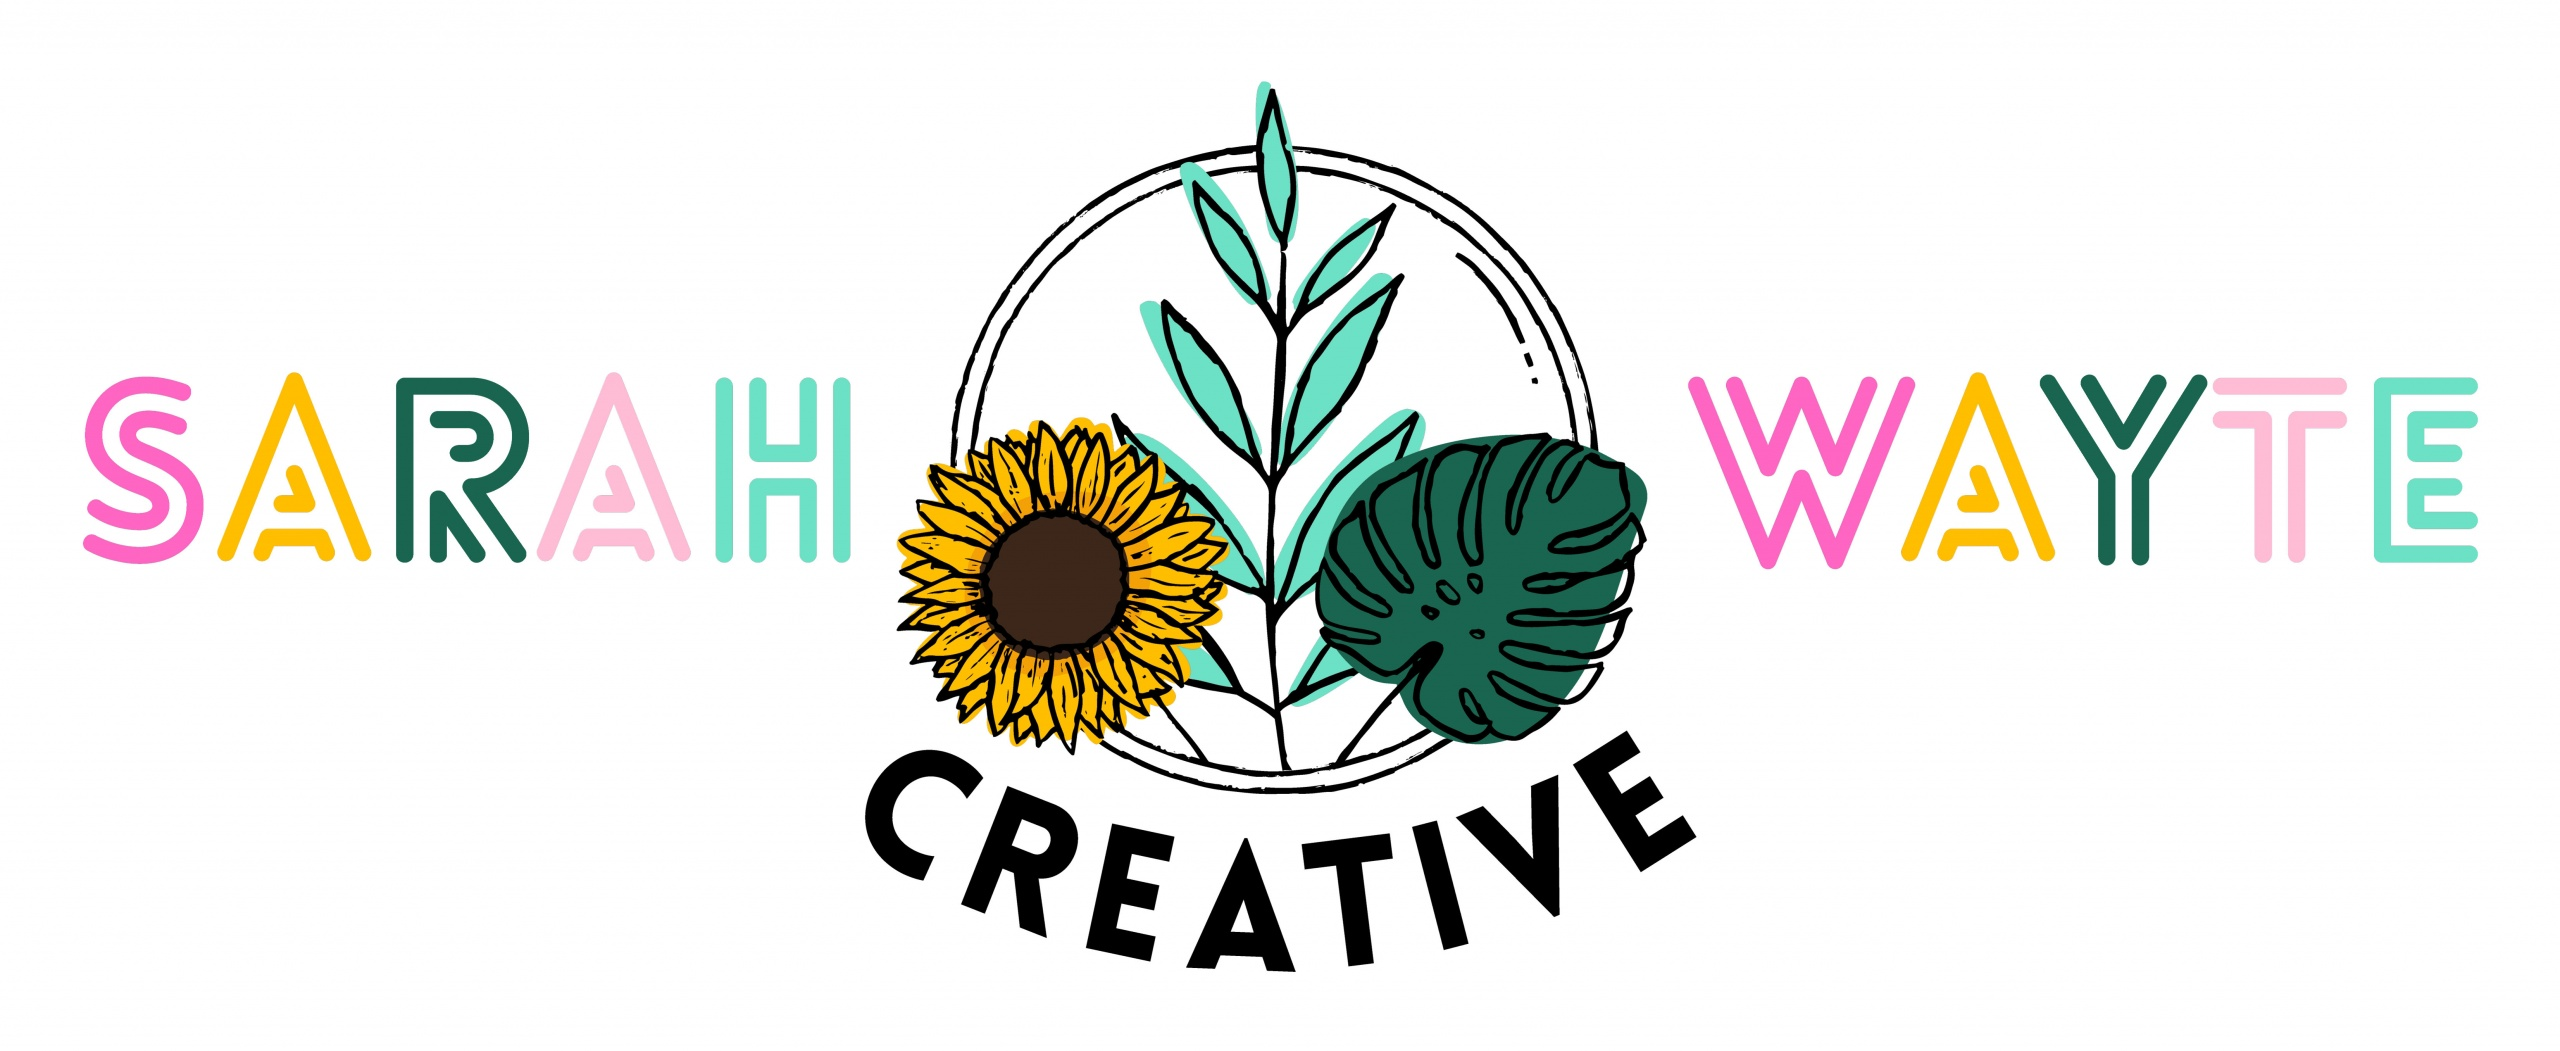 Sketched logo with the words Sarah Wayte Creative around it